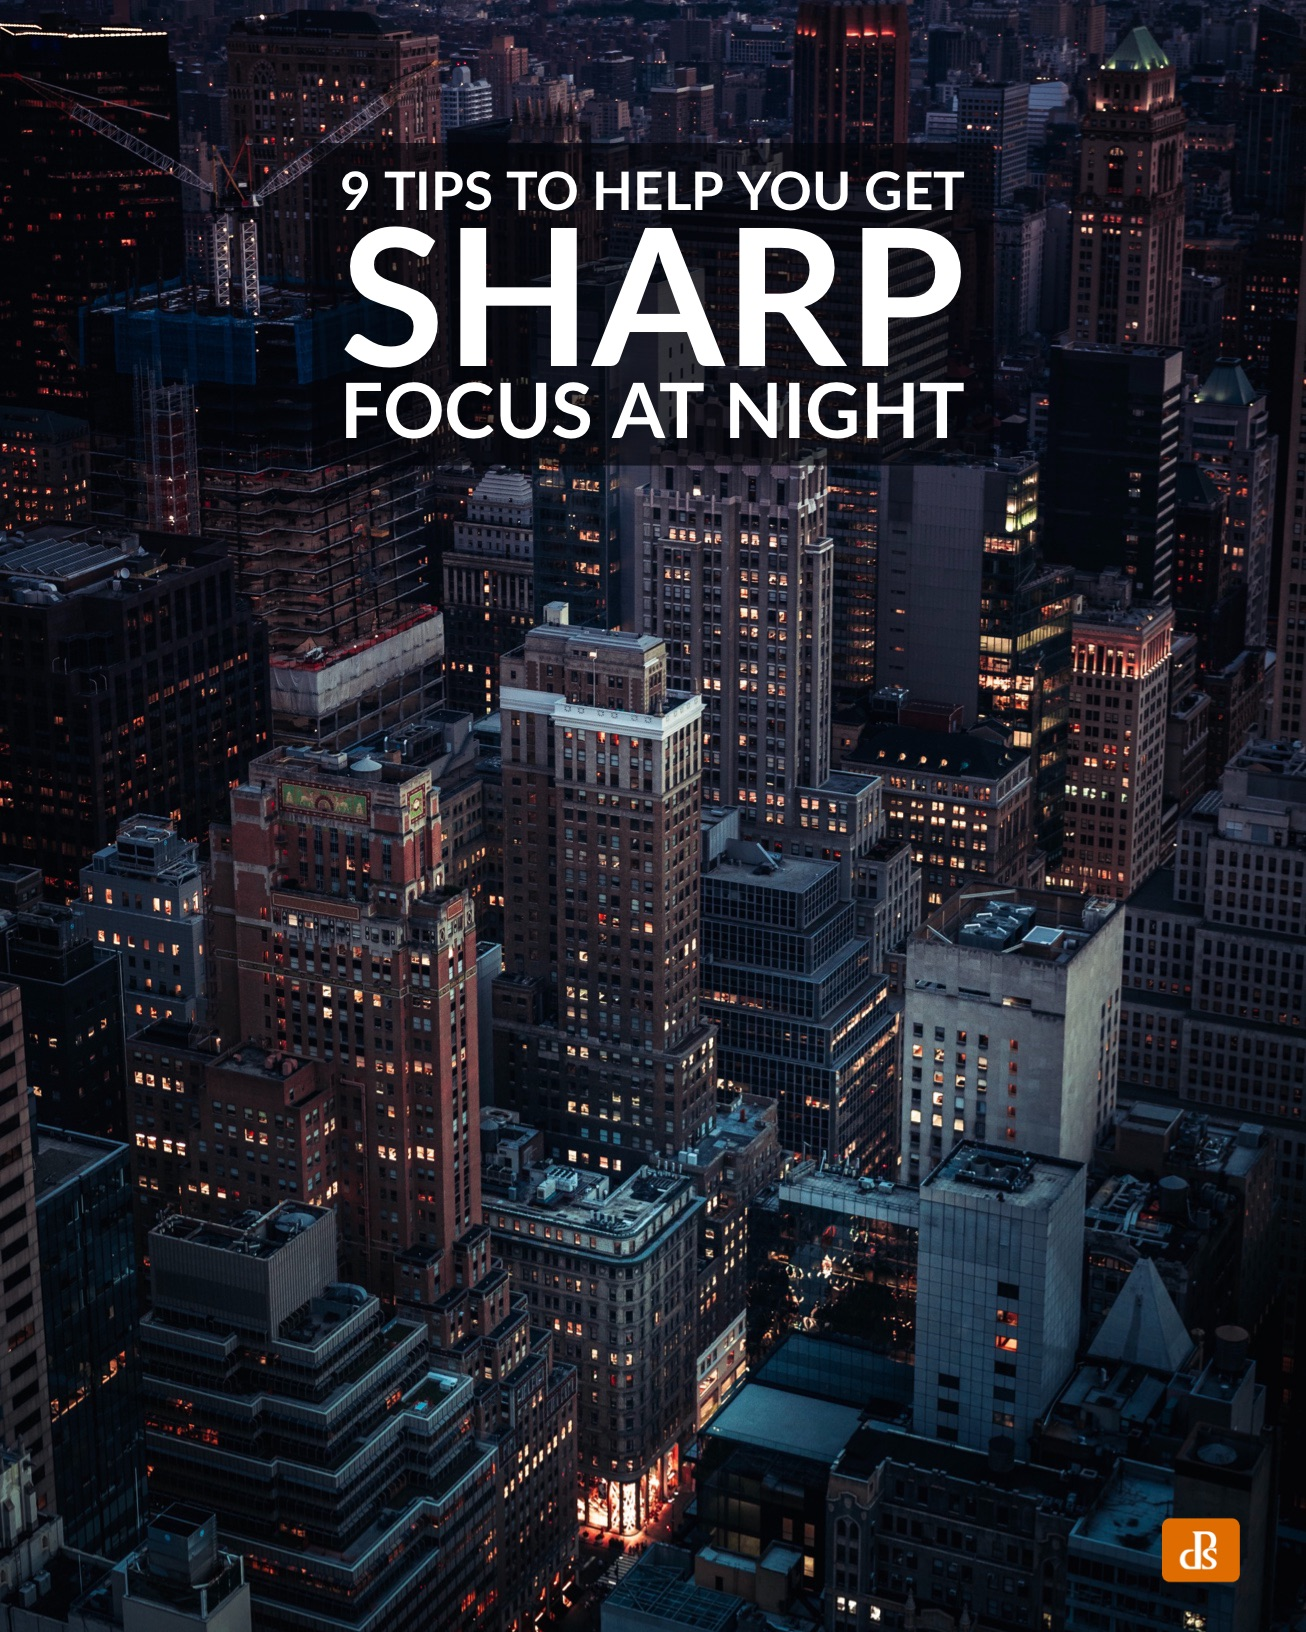 9 Tips to Help you get Sharp Focus at Night